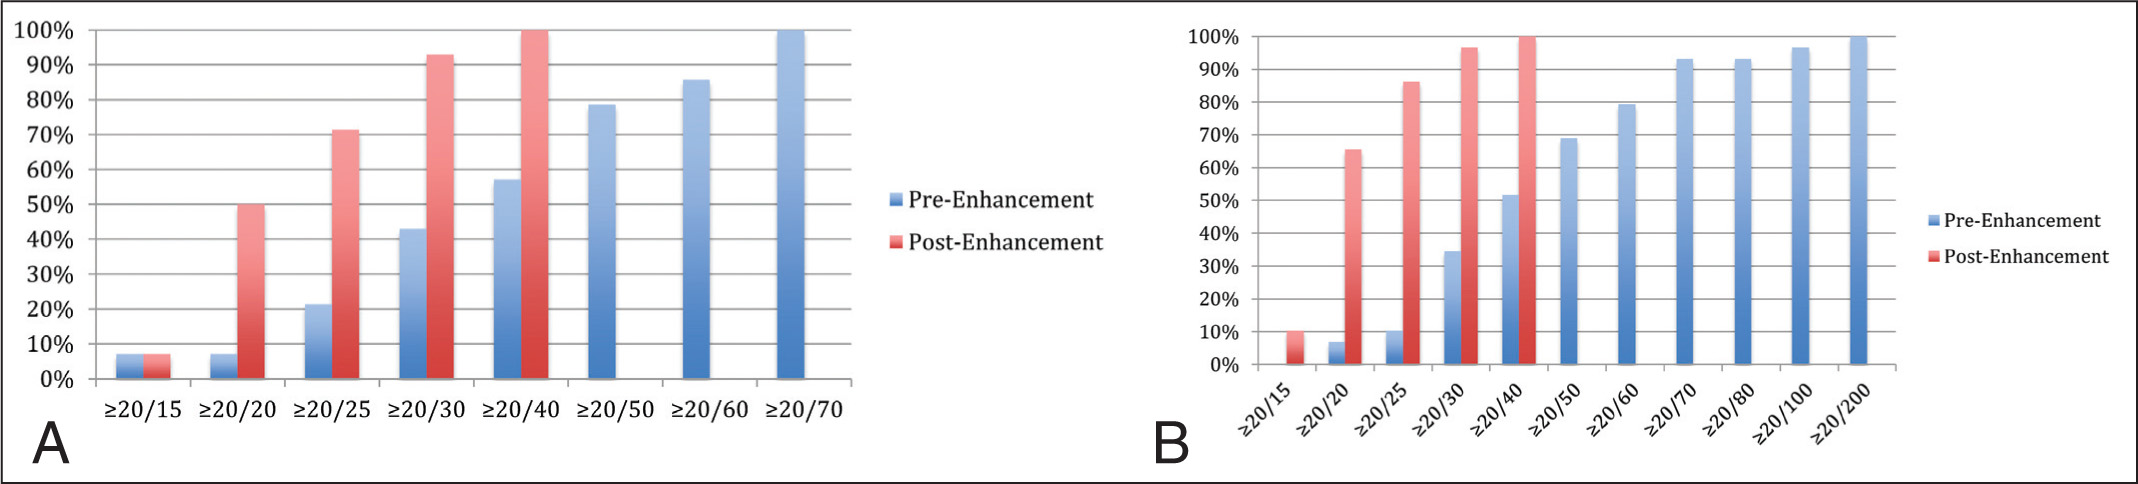 (A) Uncorrected visual acuity in patients with hyperopic manifest refraction significantly improved after enhancement (n = 14, P < .002). (B) Uncorrected visual acuity in patients with myopic manifest refraction before and after enhancement (n = 29, P < .001).